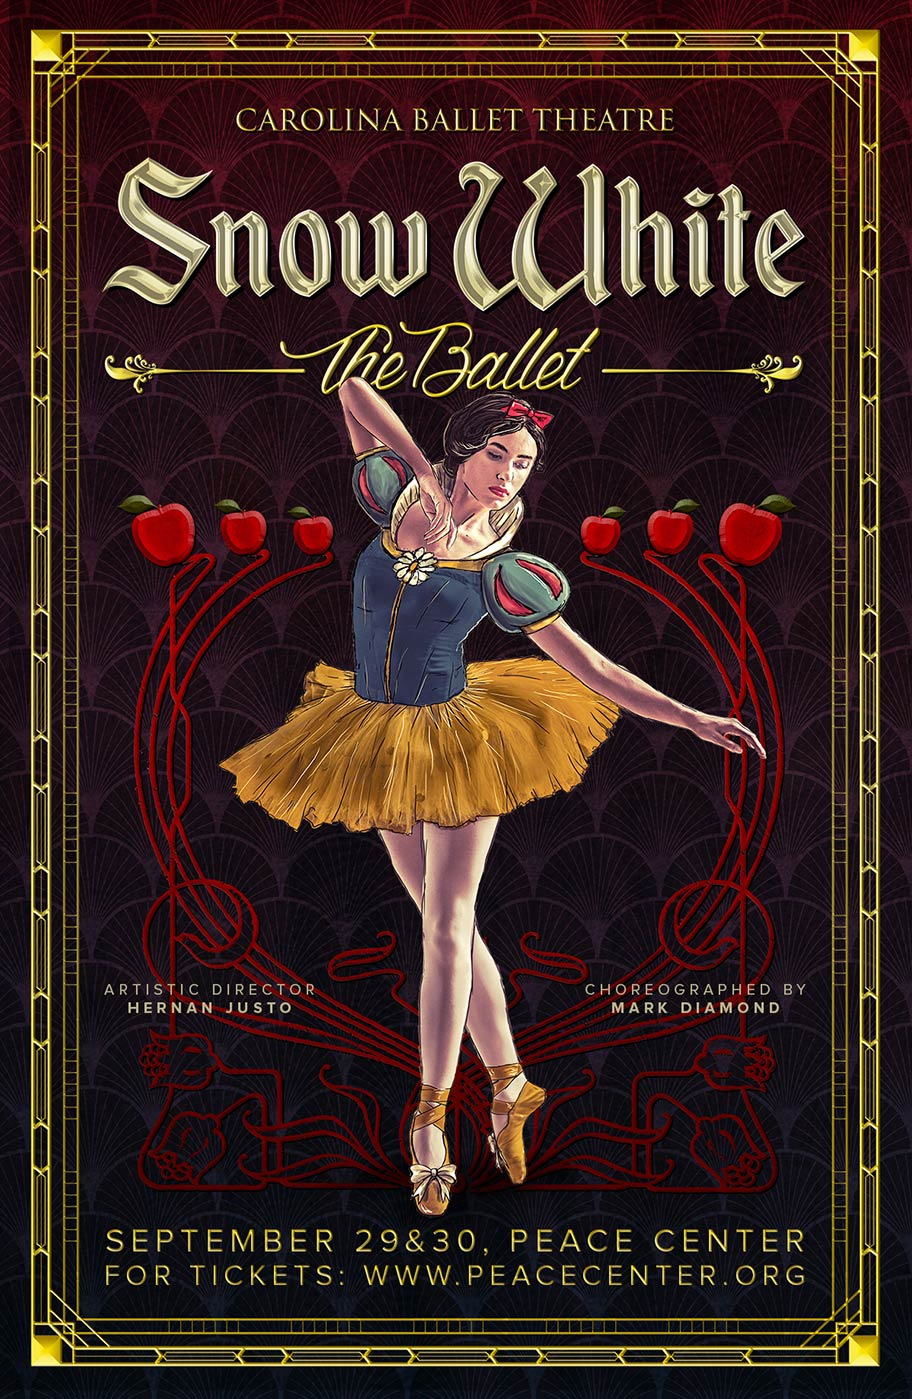 snow-white-the-ballet-poster-v2